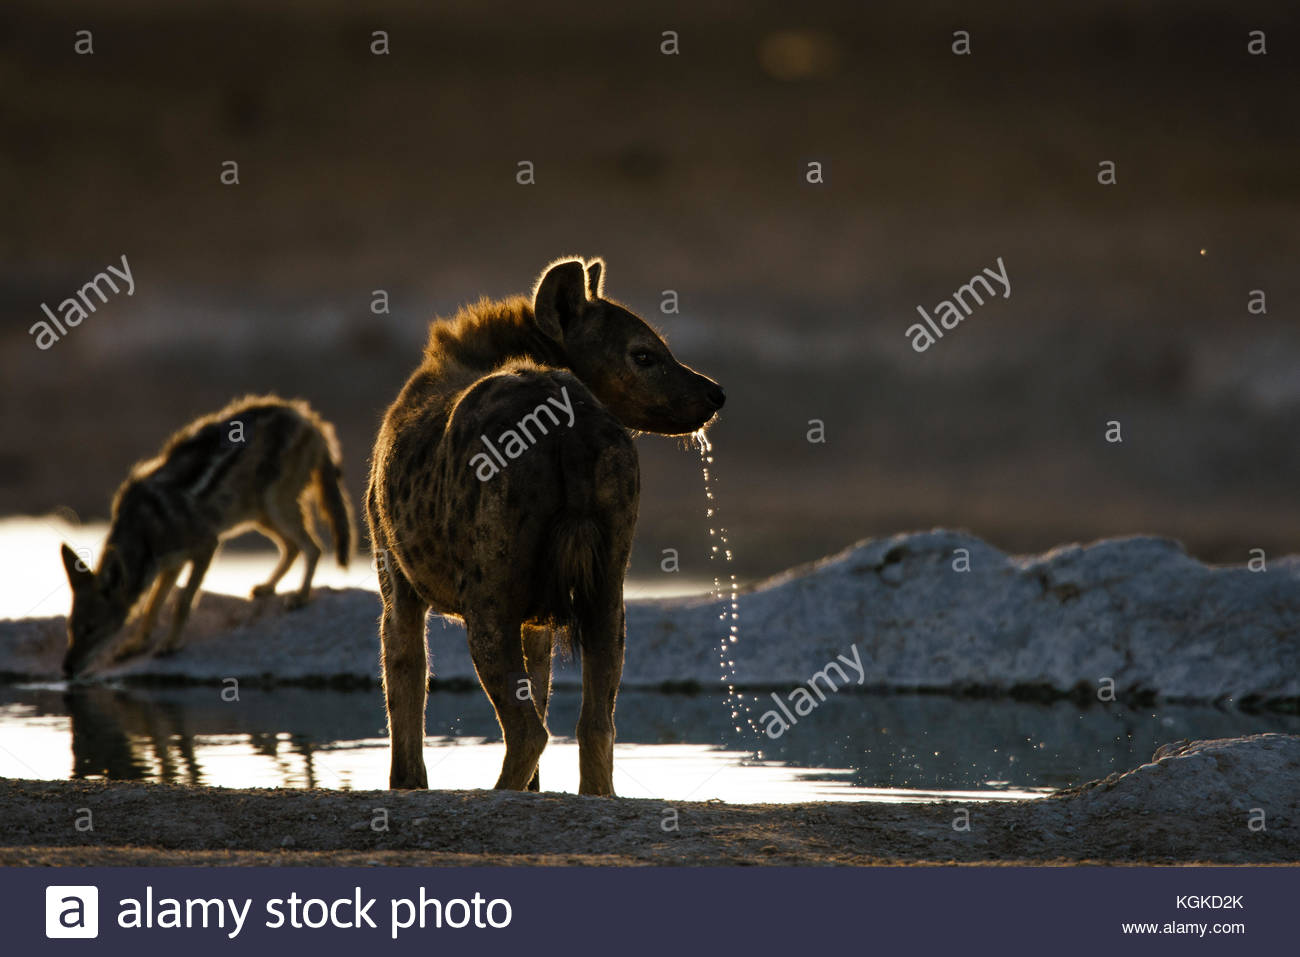 A Spotted hyena, Crocuta crocuta, drinking at a waterhole early in the morning. - Stock Image